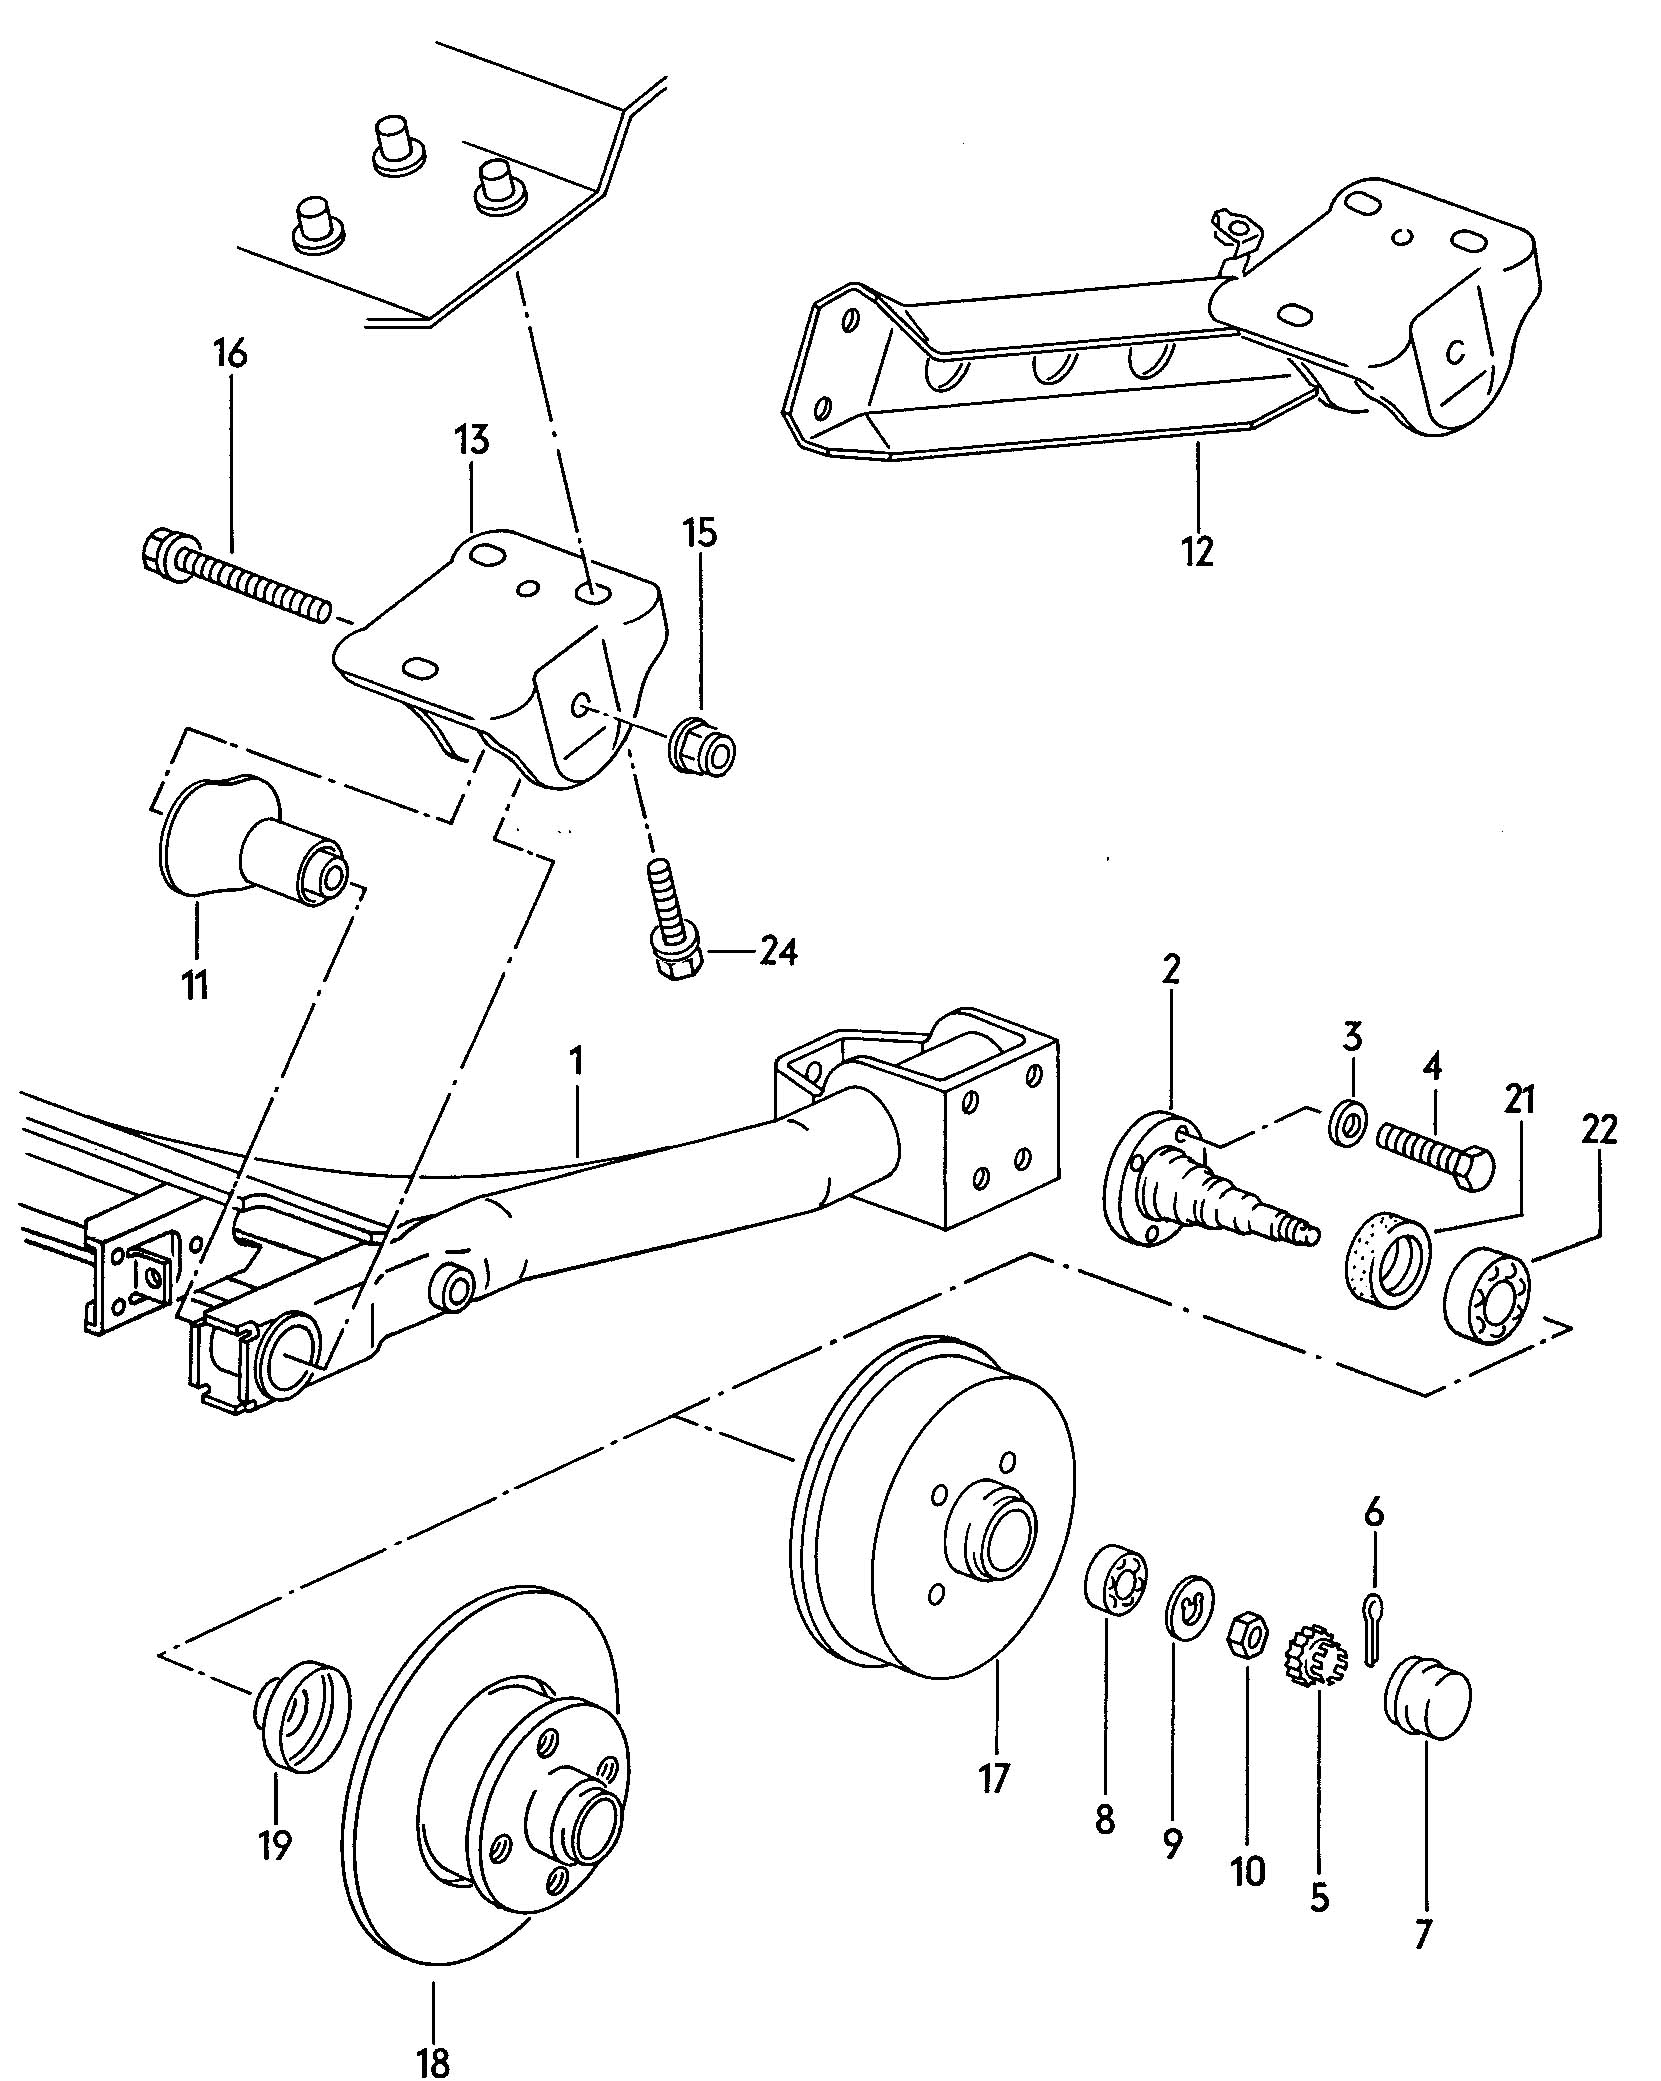 Vw Bug Ball Joint Front Beam Diagram, Vw, Free Engine